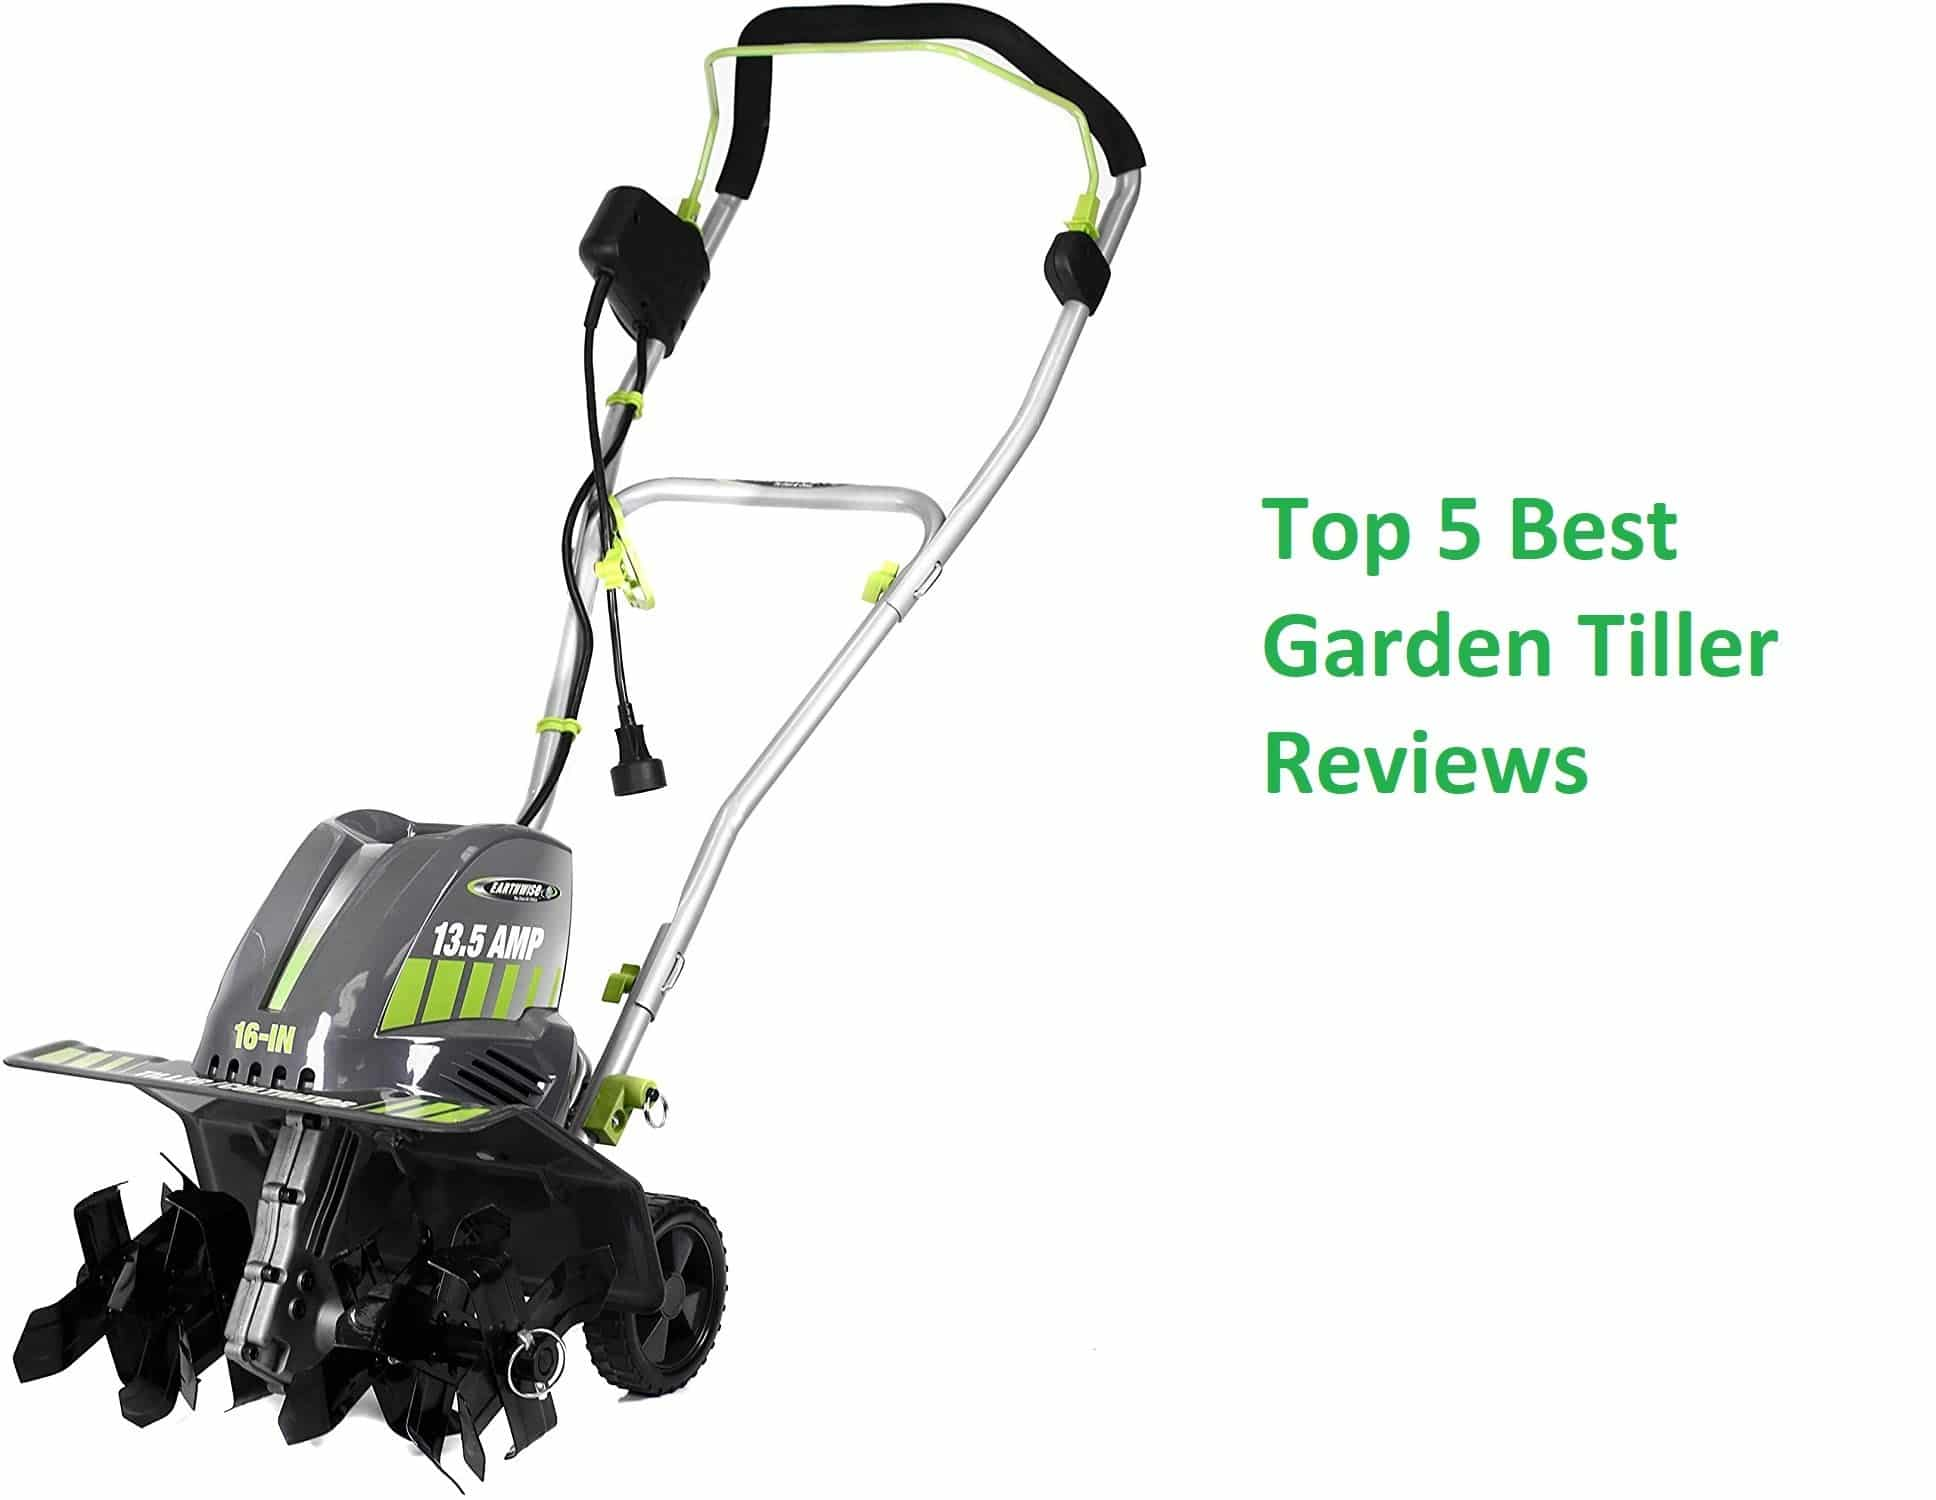 Top 5 best garden tiller reviews